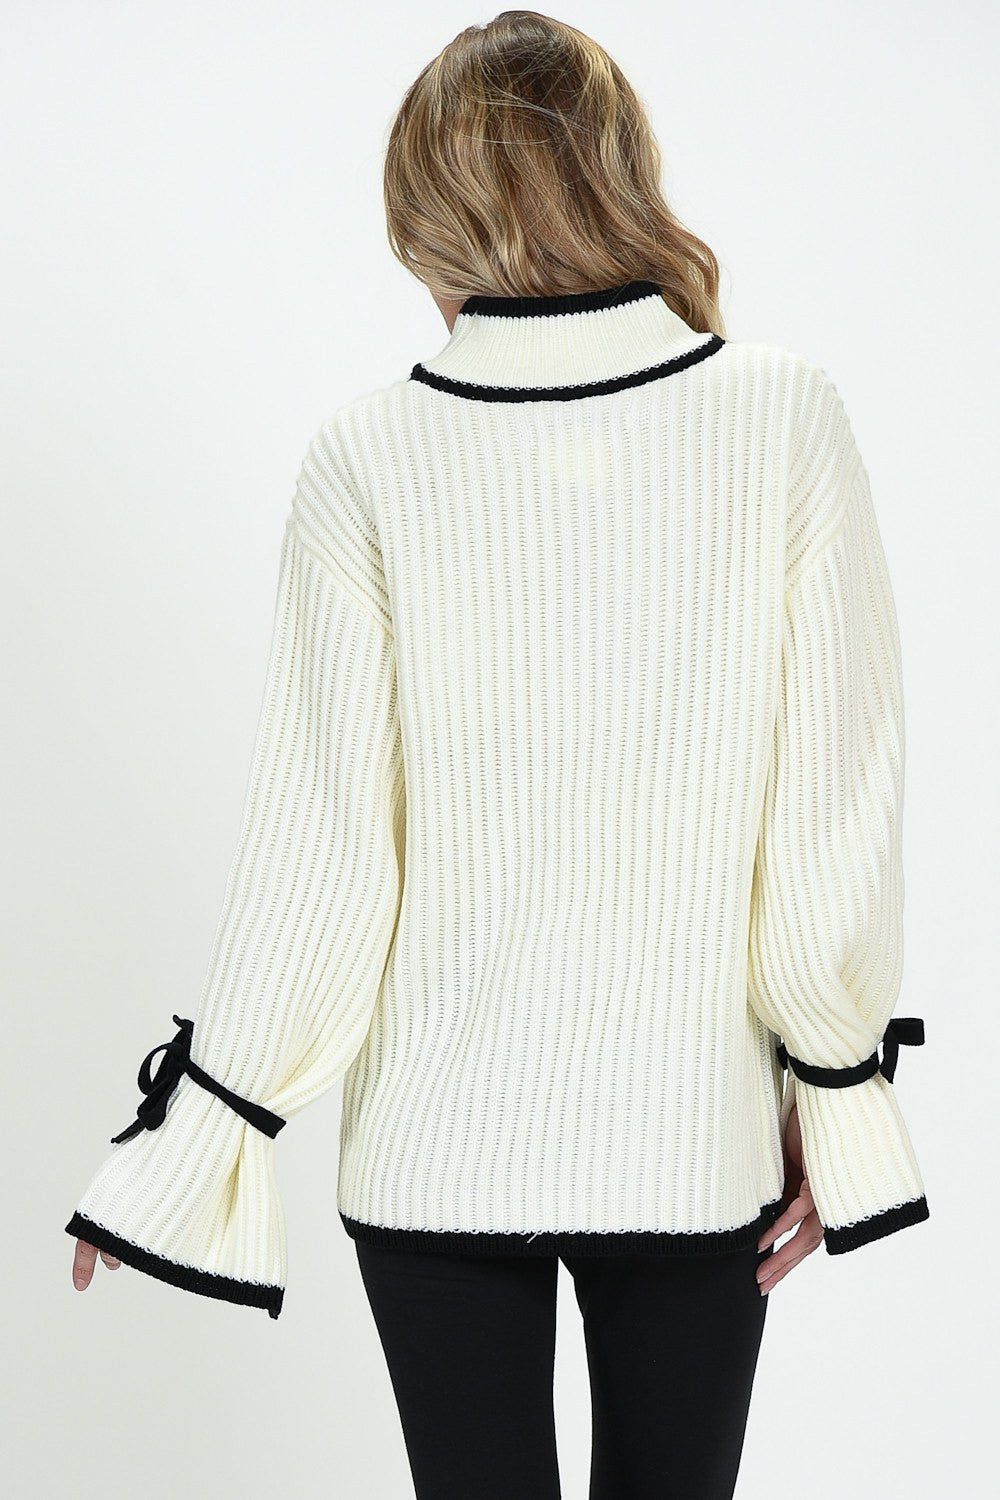 Knit Down Sweater With Tie Cuffs